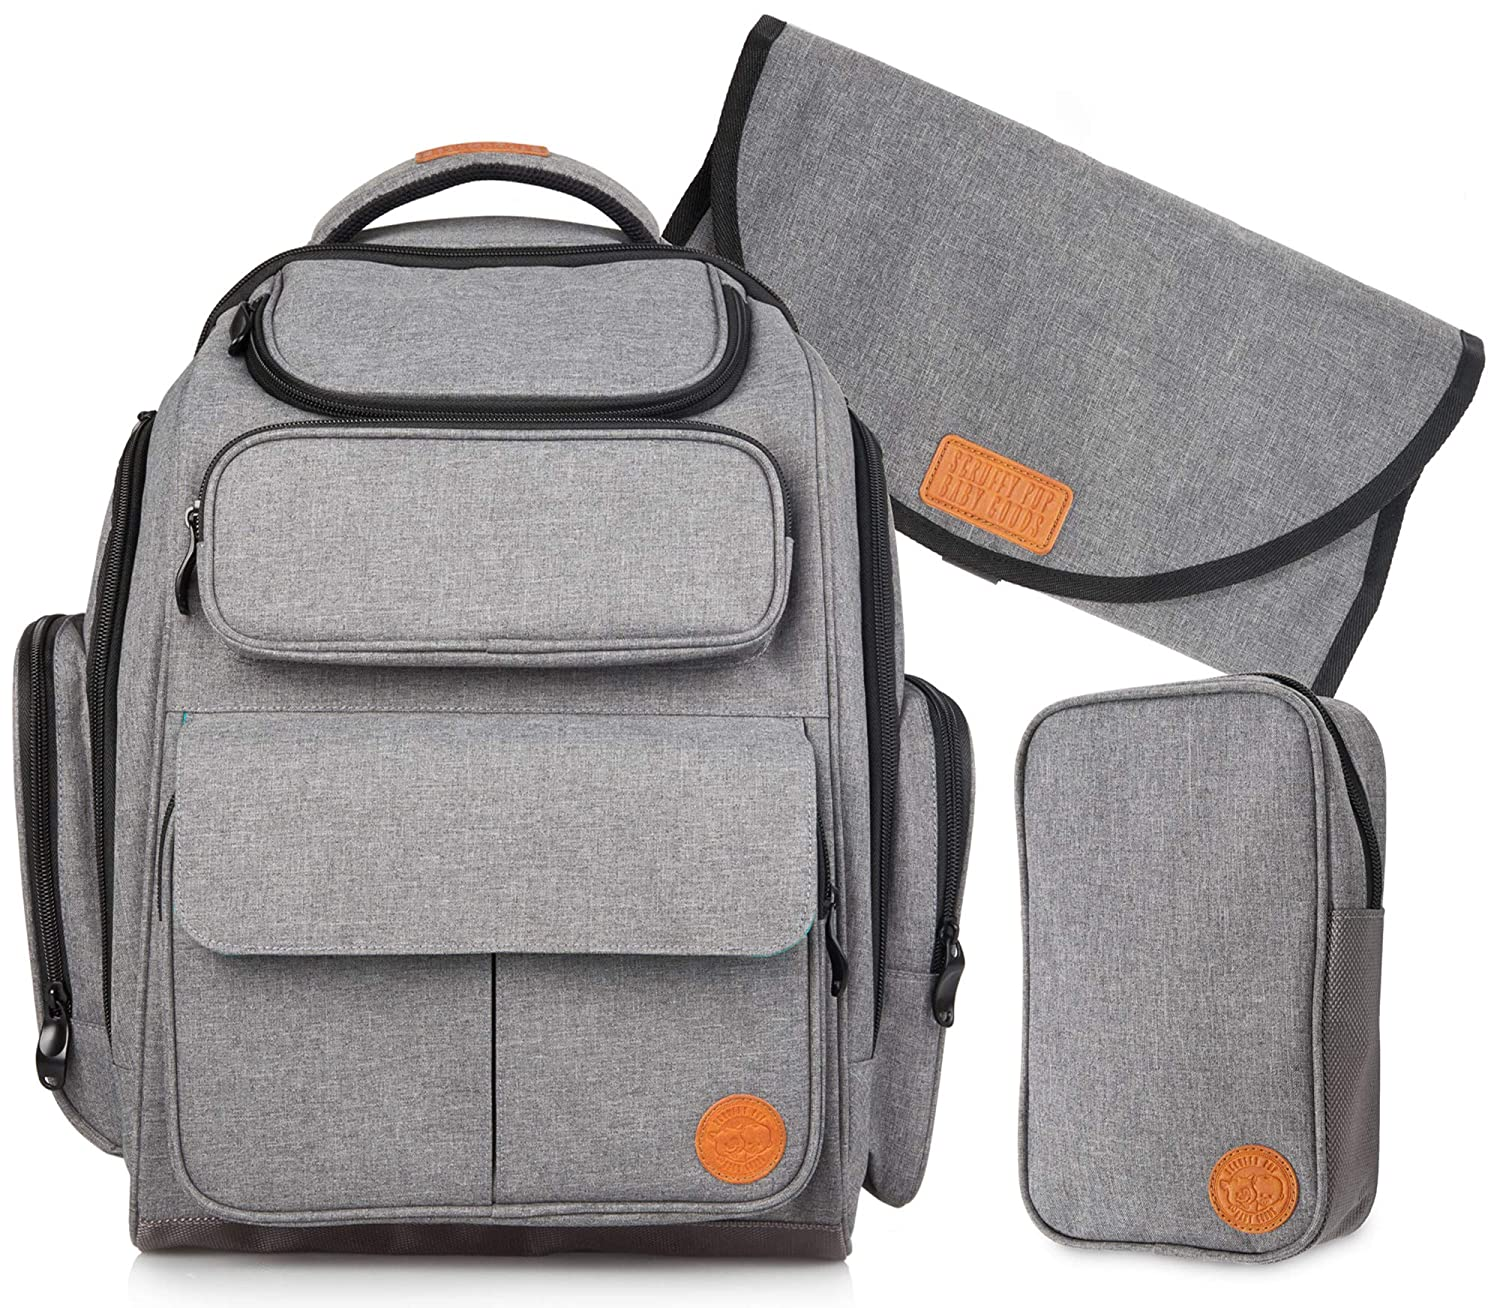 55efef490bf7d Amazon.com : Dad Diaper Bag Backpack: Large Baby Travel Bags for a Boy,  Girl & Mom - Grey : Baby